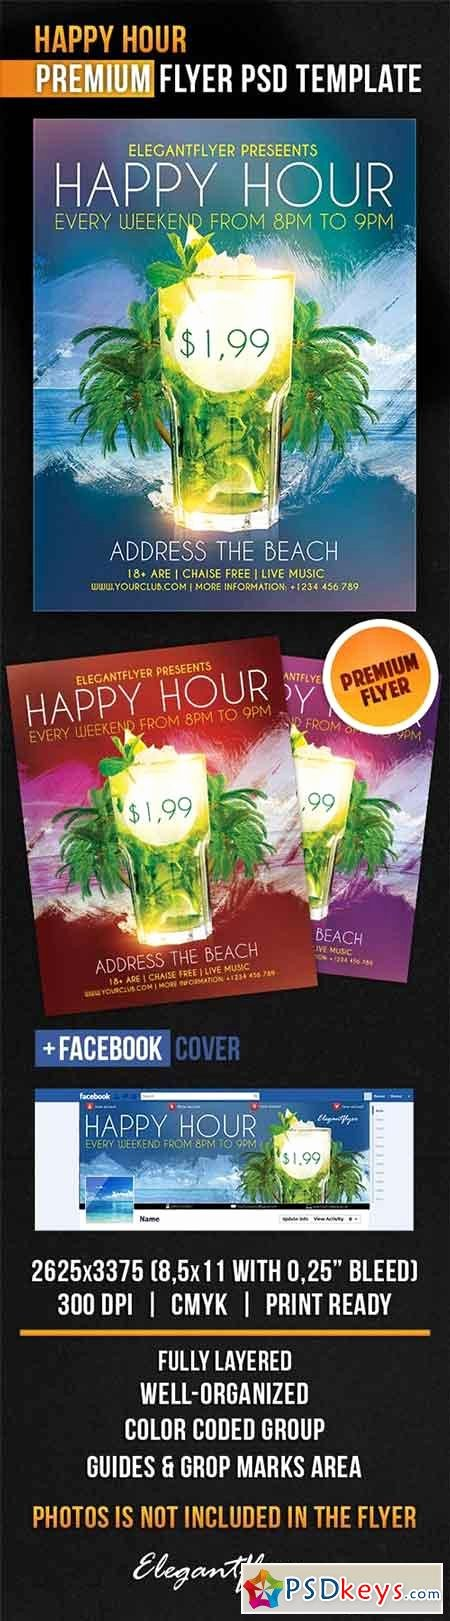 Happy Hour Flyer Template Best Of Happy Hour Flyer Psd Template Cover Free Download Shop Vector Stock Image Via